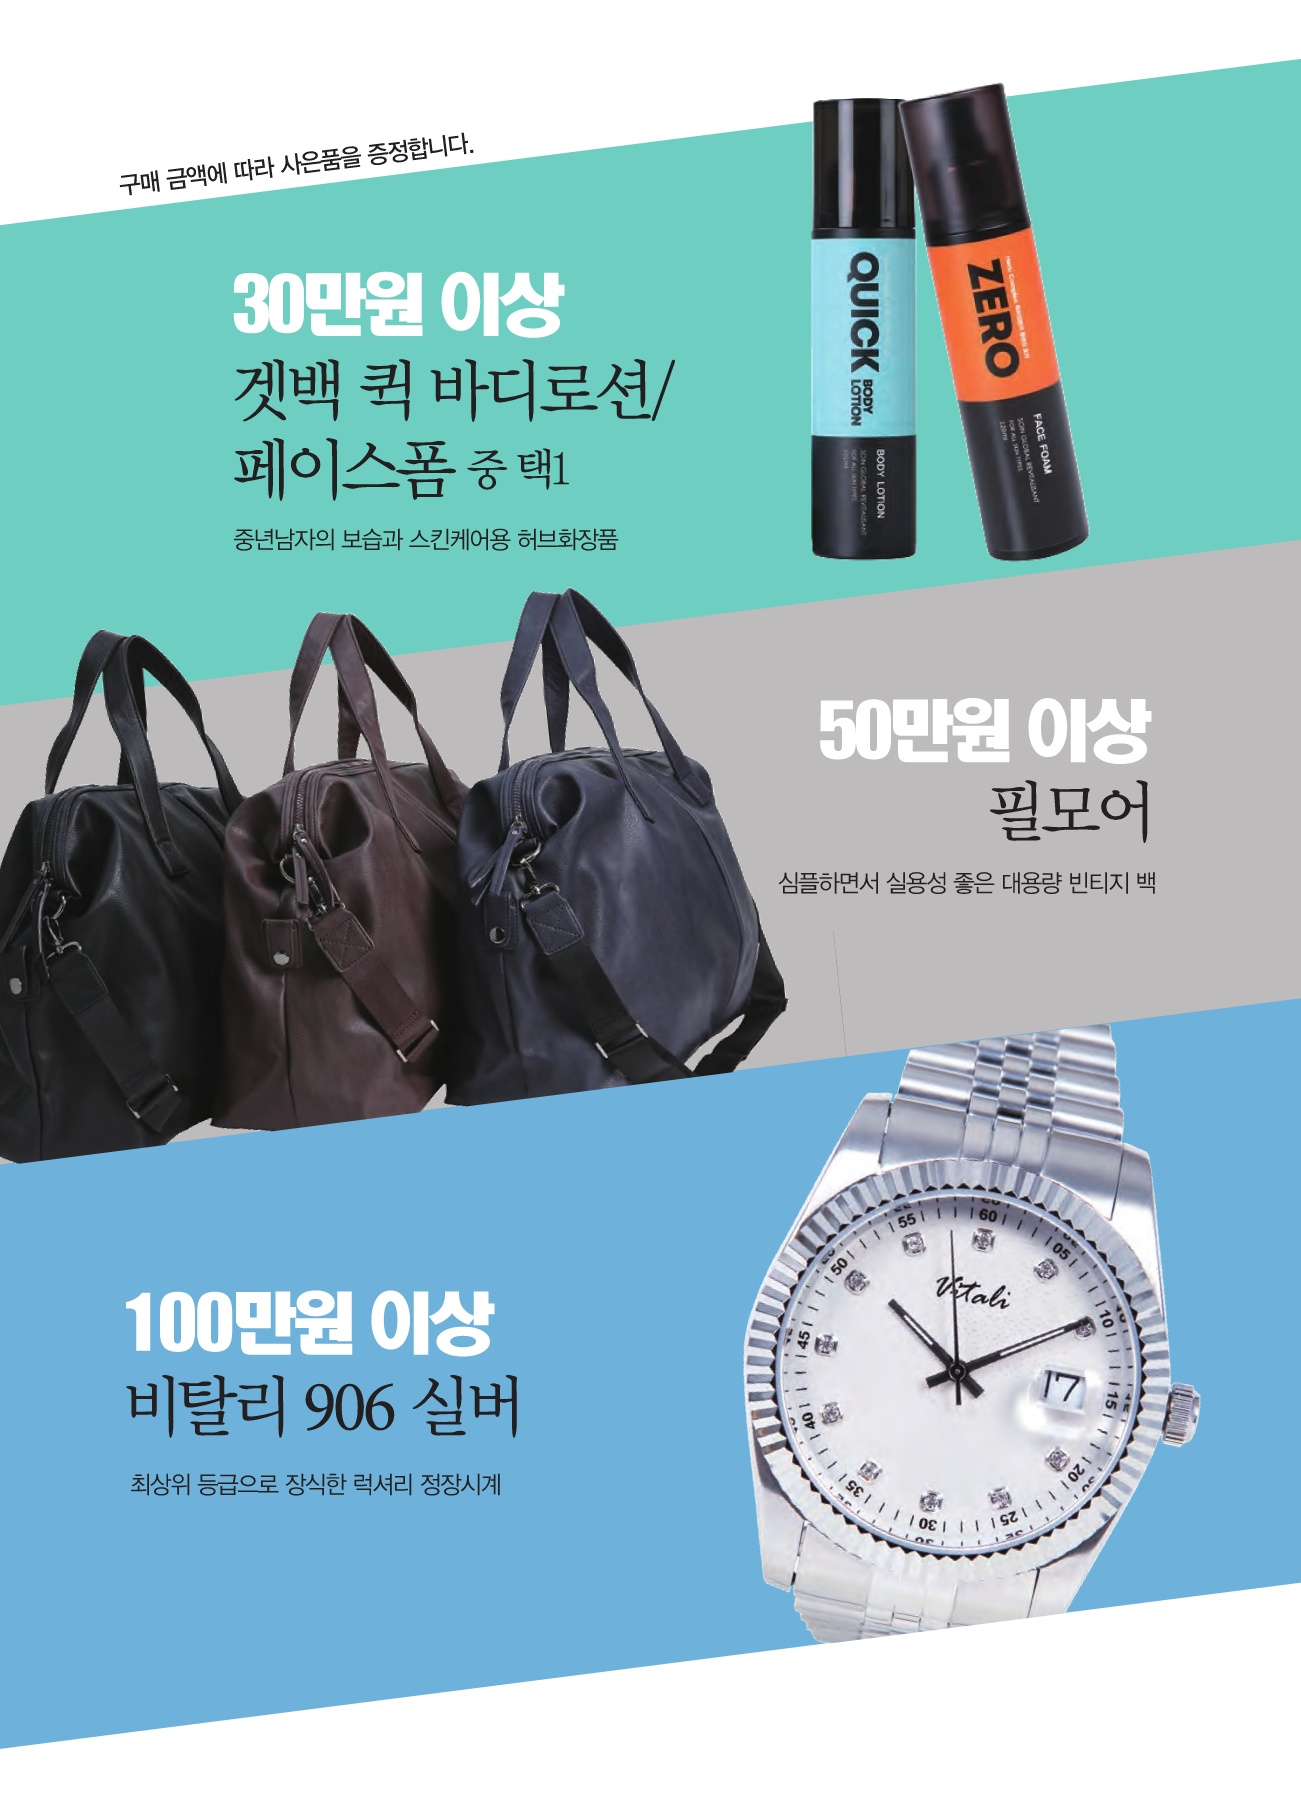 2bcf27a01cc 2019_4월호(브로슈어) Pages 51 - 100 - Text Version | AnyFlip